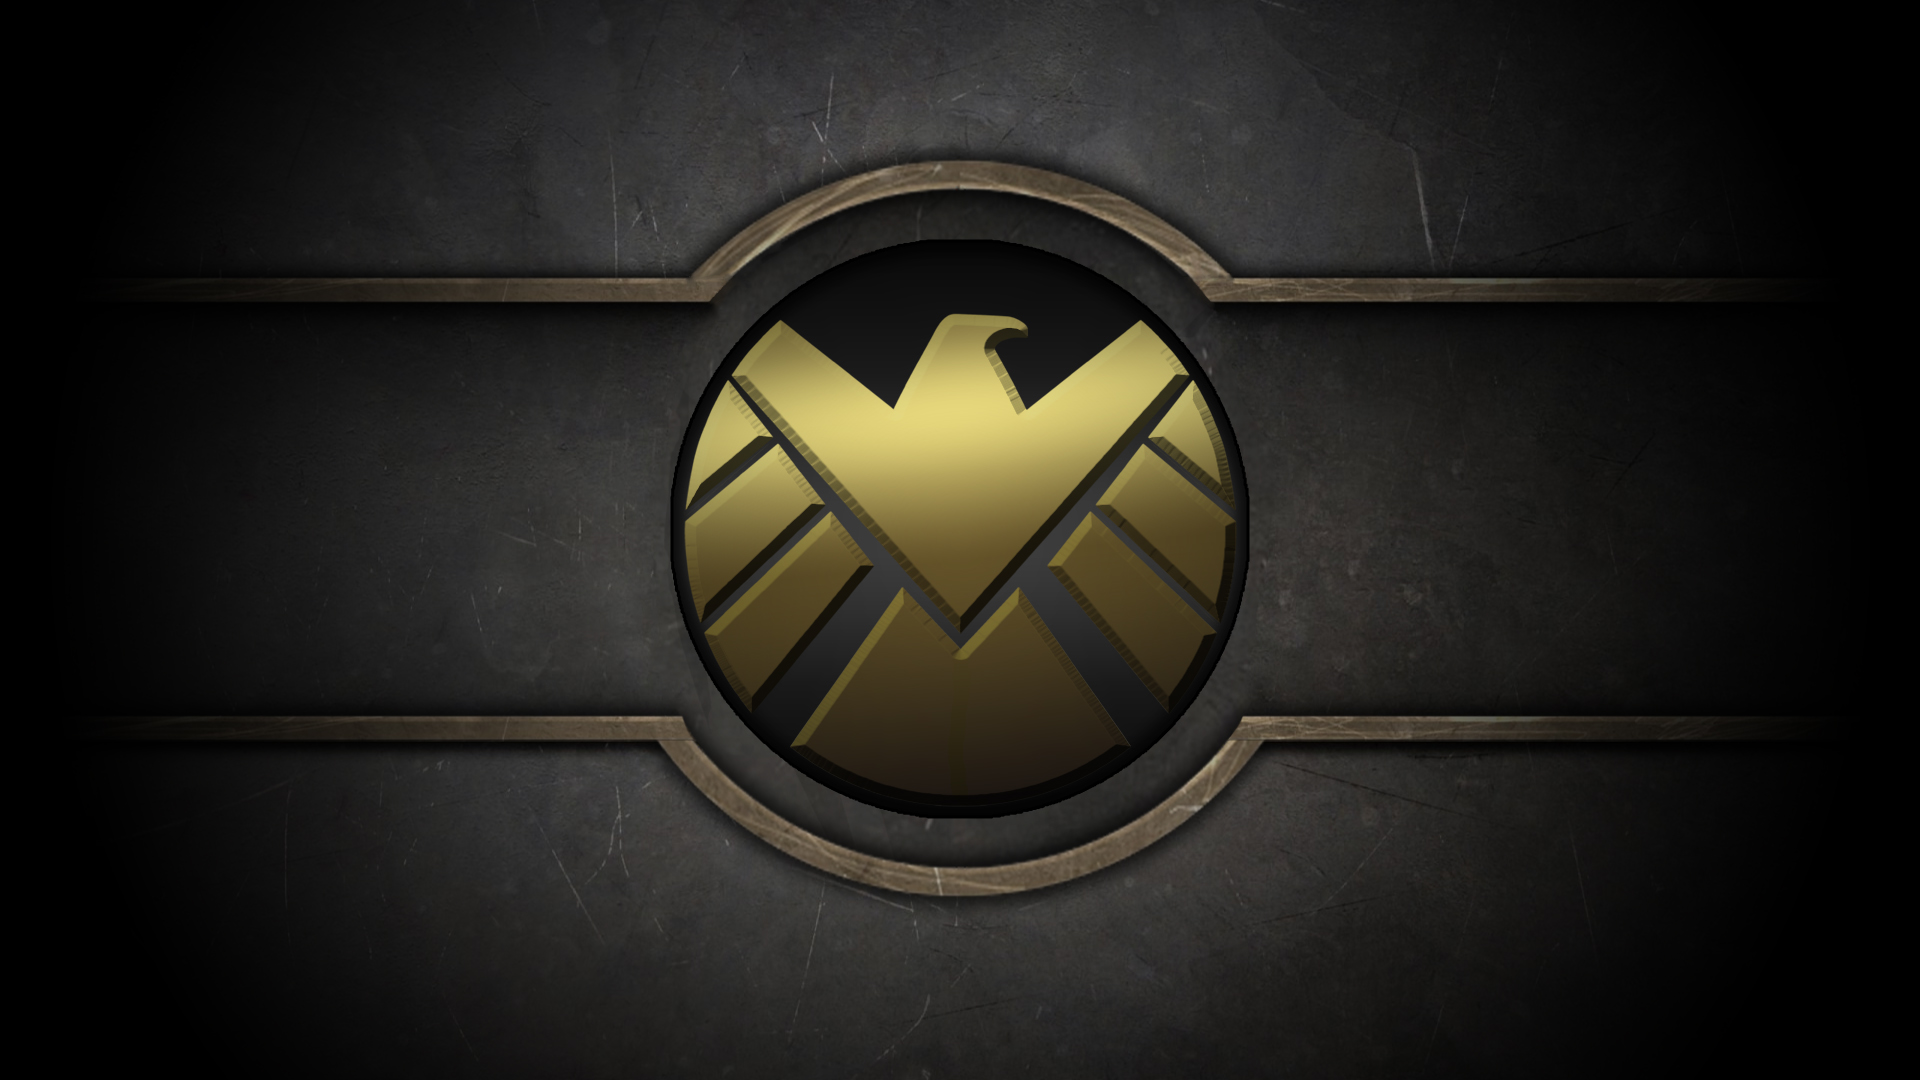 SHIELD Logo Wallpaper 1920x1080 By Masteroffunny